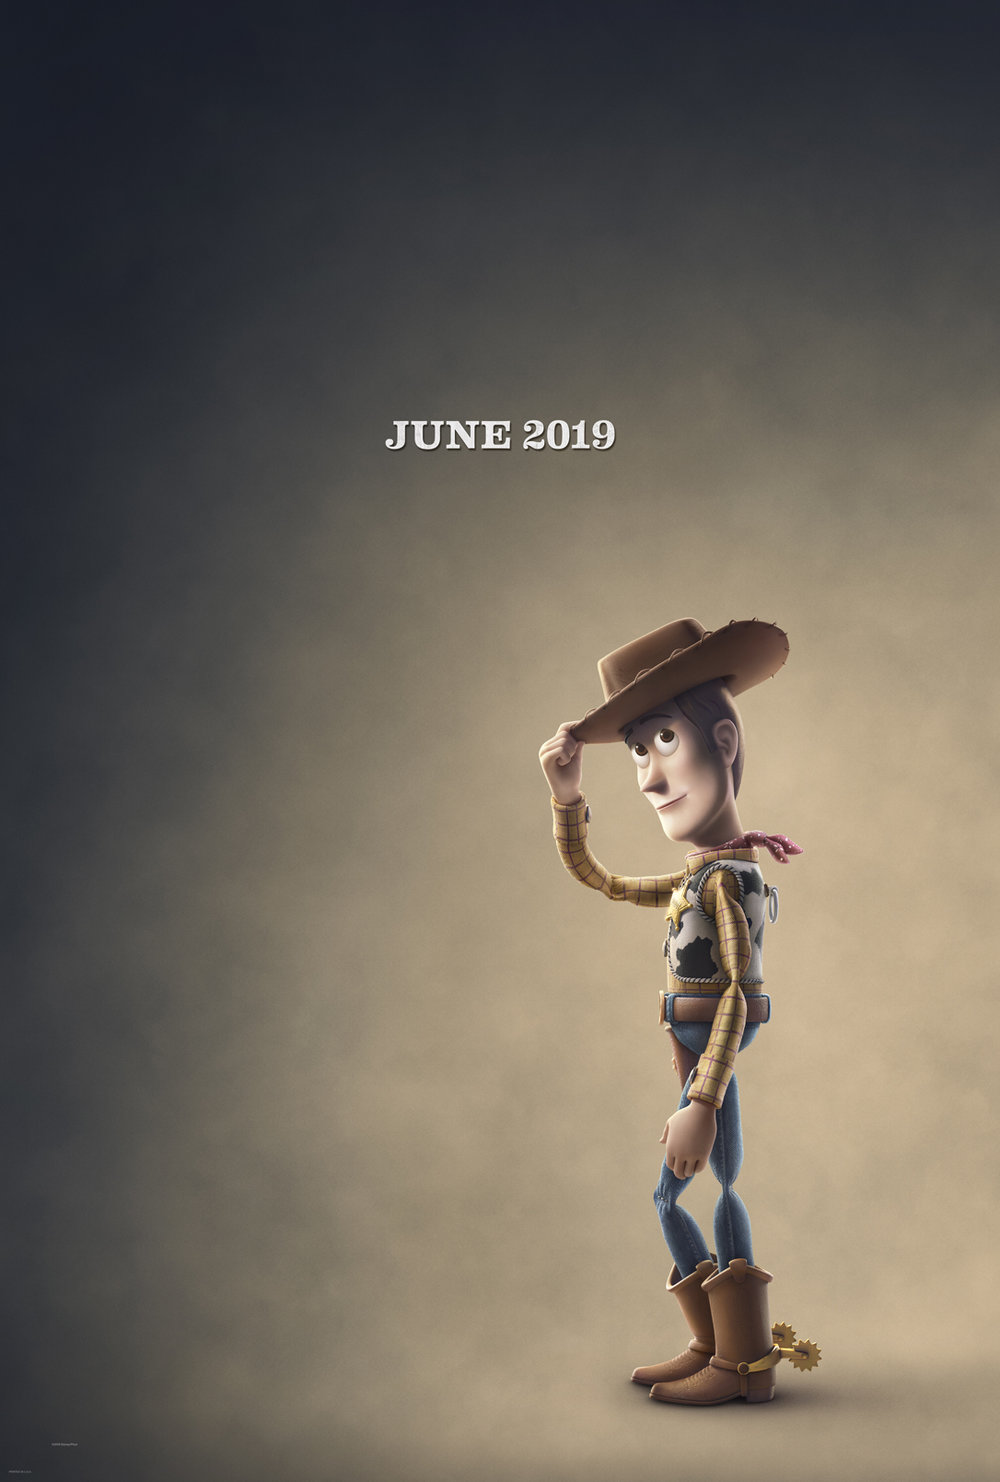 the-first-trailer-for-toy-story-4-has-arrived-and-it-introduces-us-to-forky1